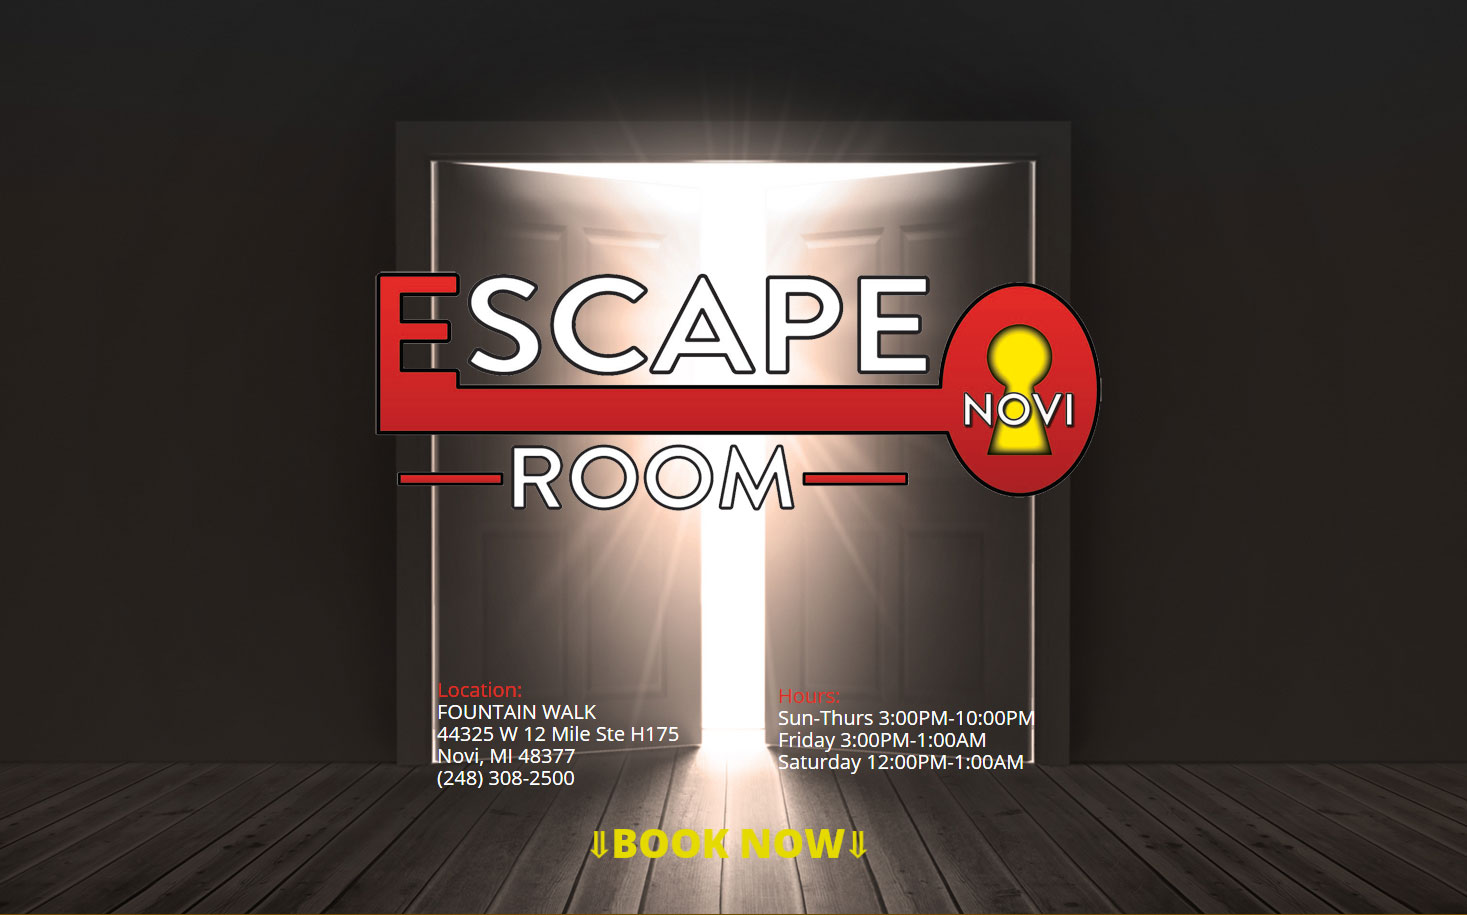 ESCAPEROOMNOVI